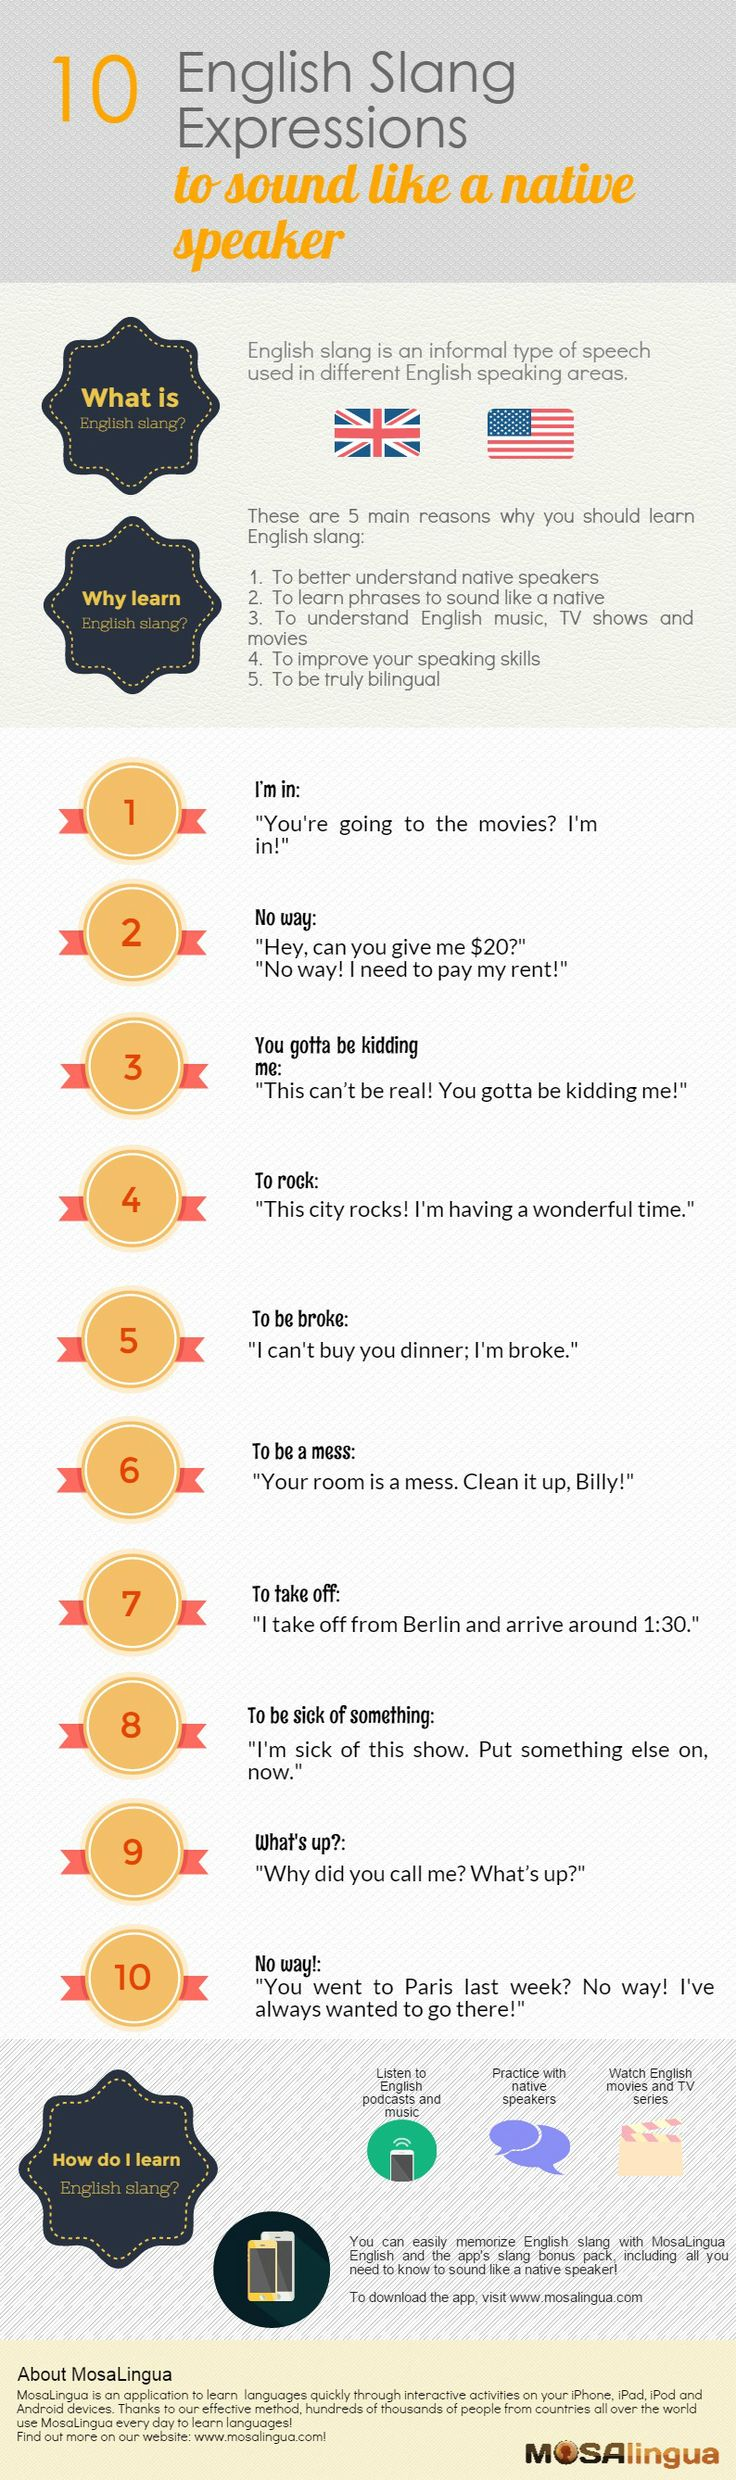 10 English slang expressions to sound like a native speaker.